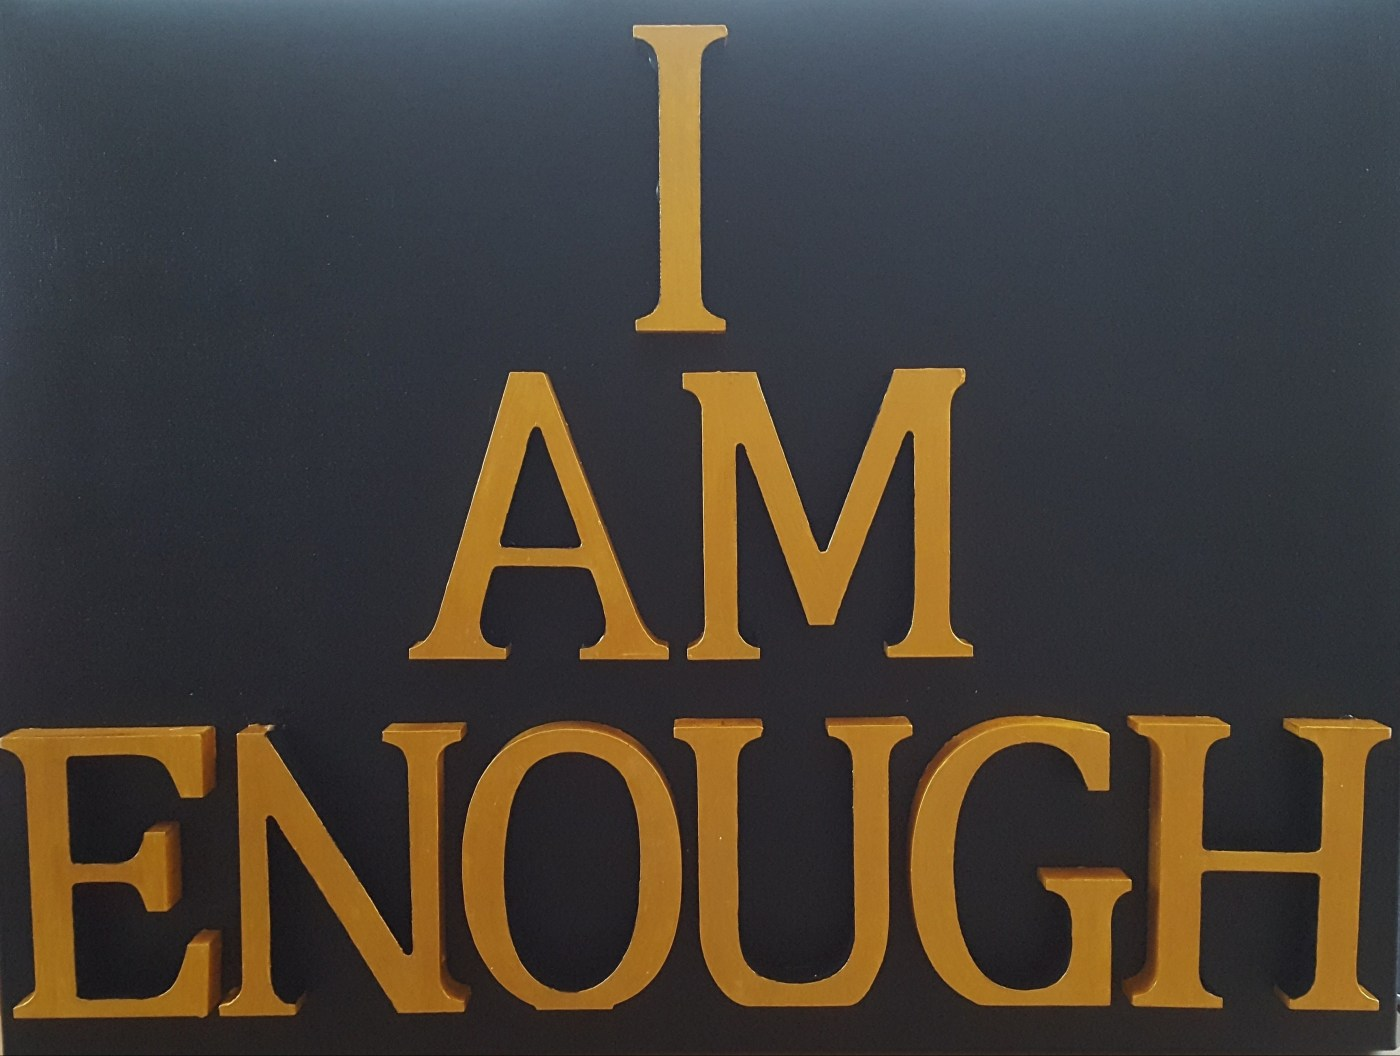 Word Art: I am enough